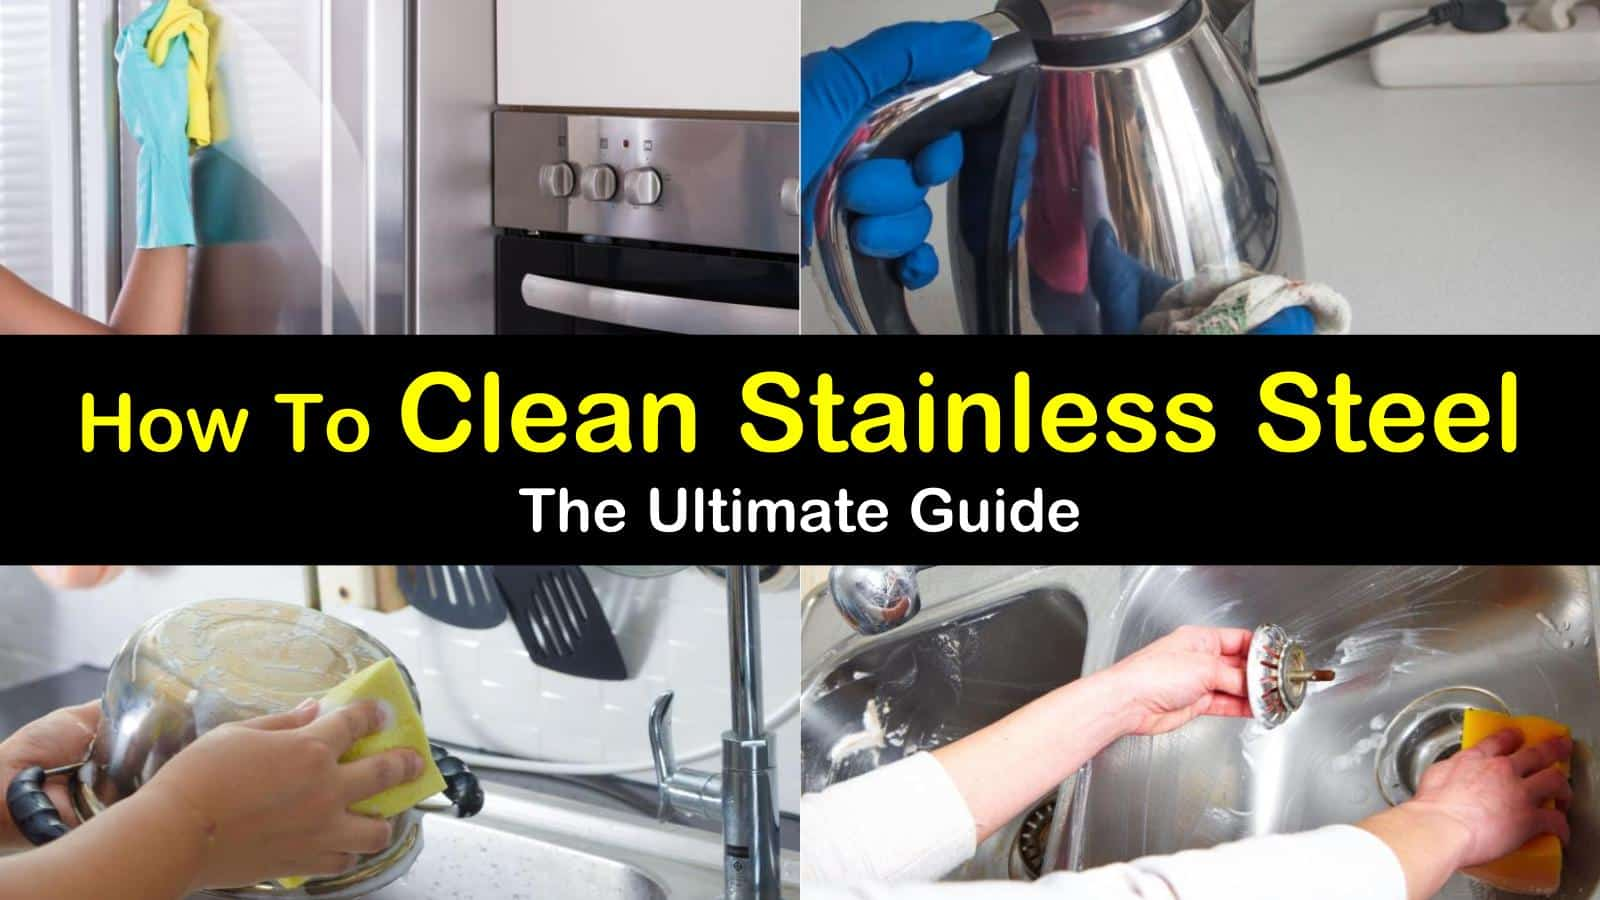 how to clean stainless steel titleimg1